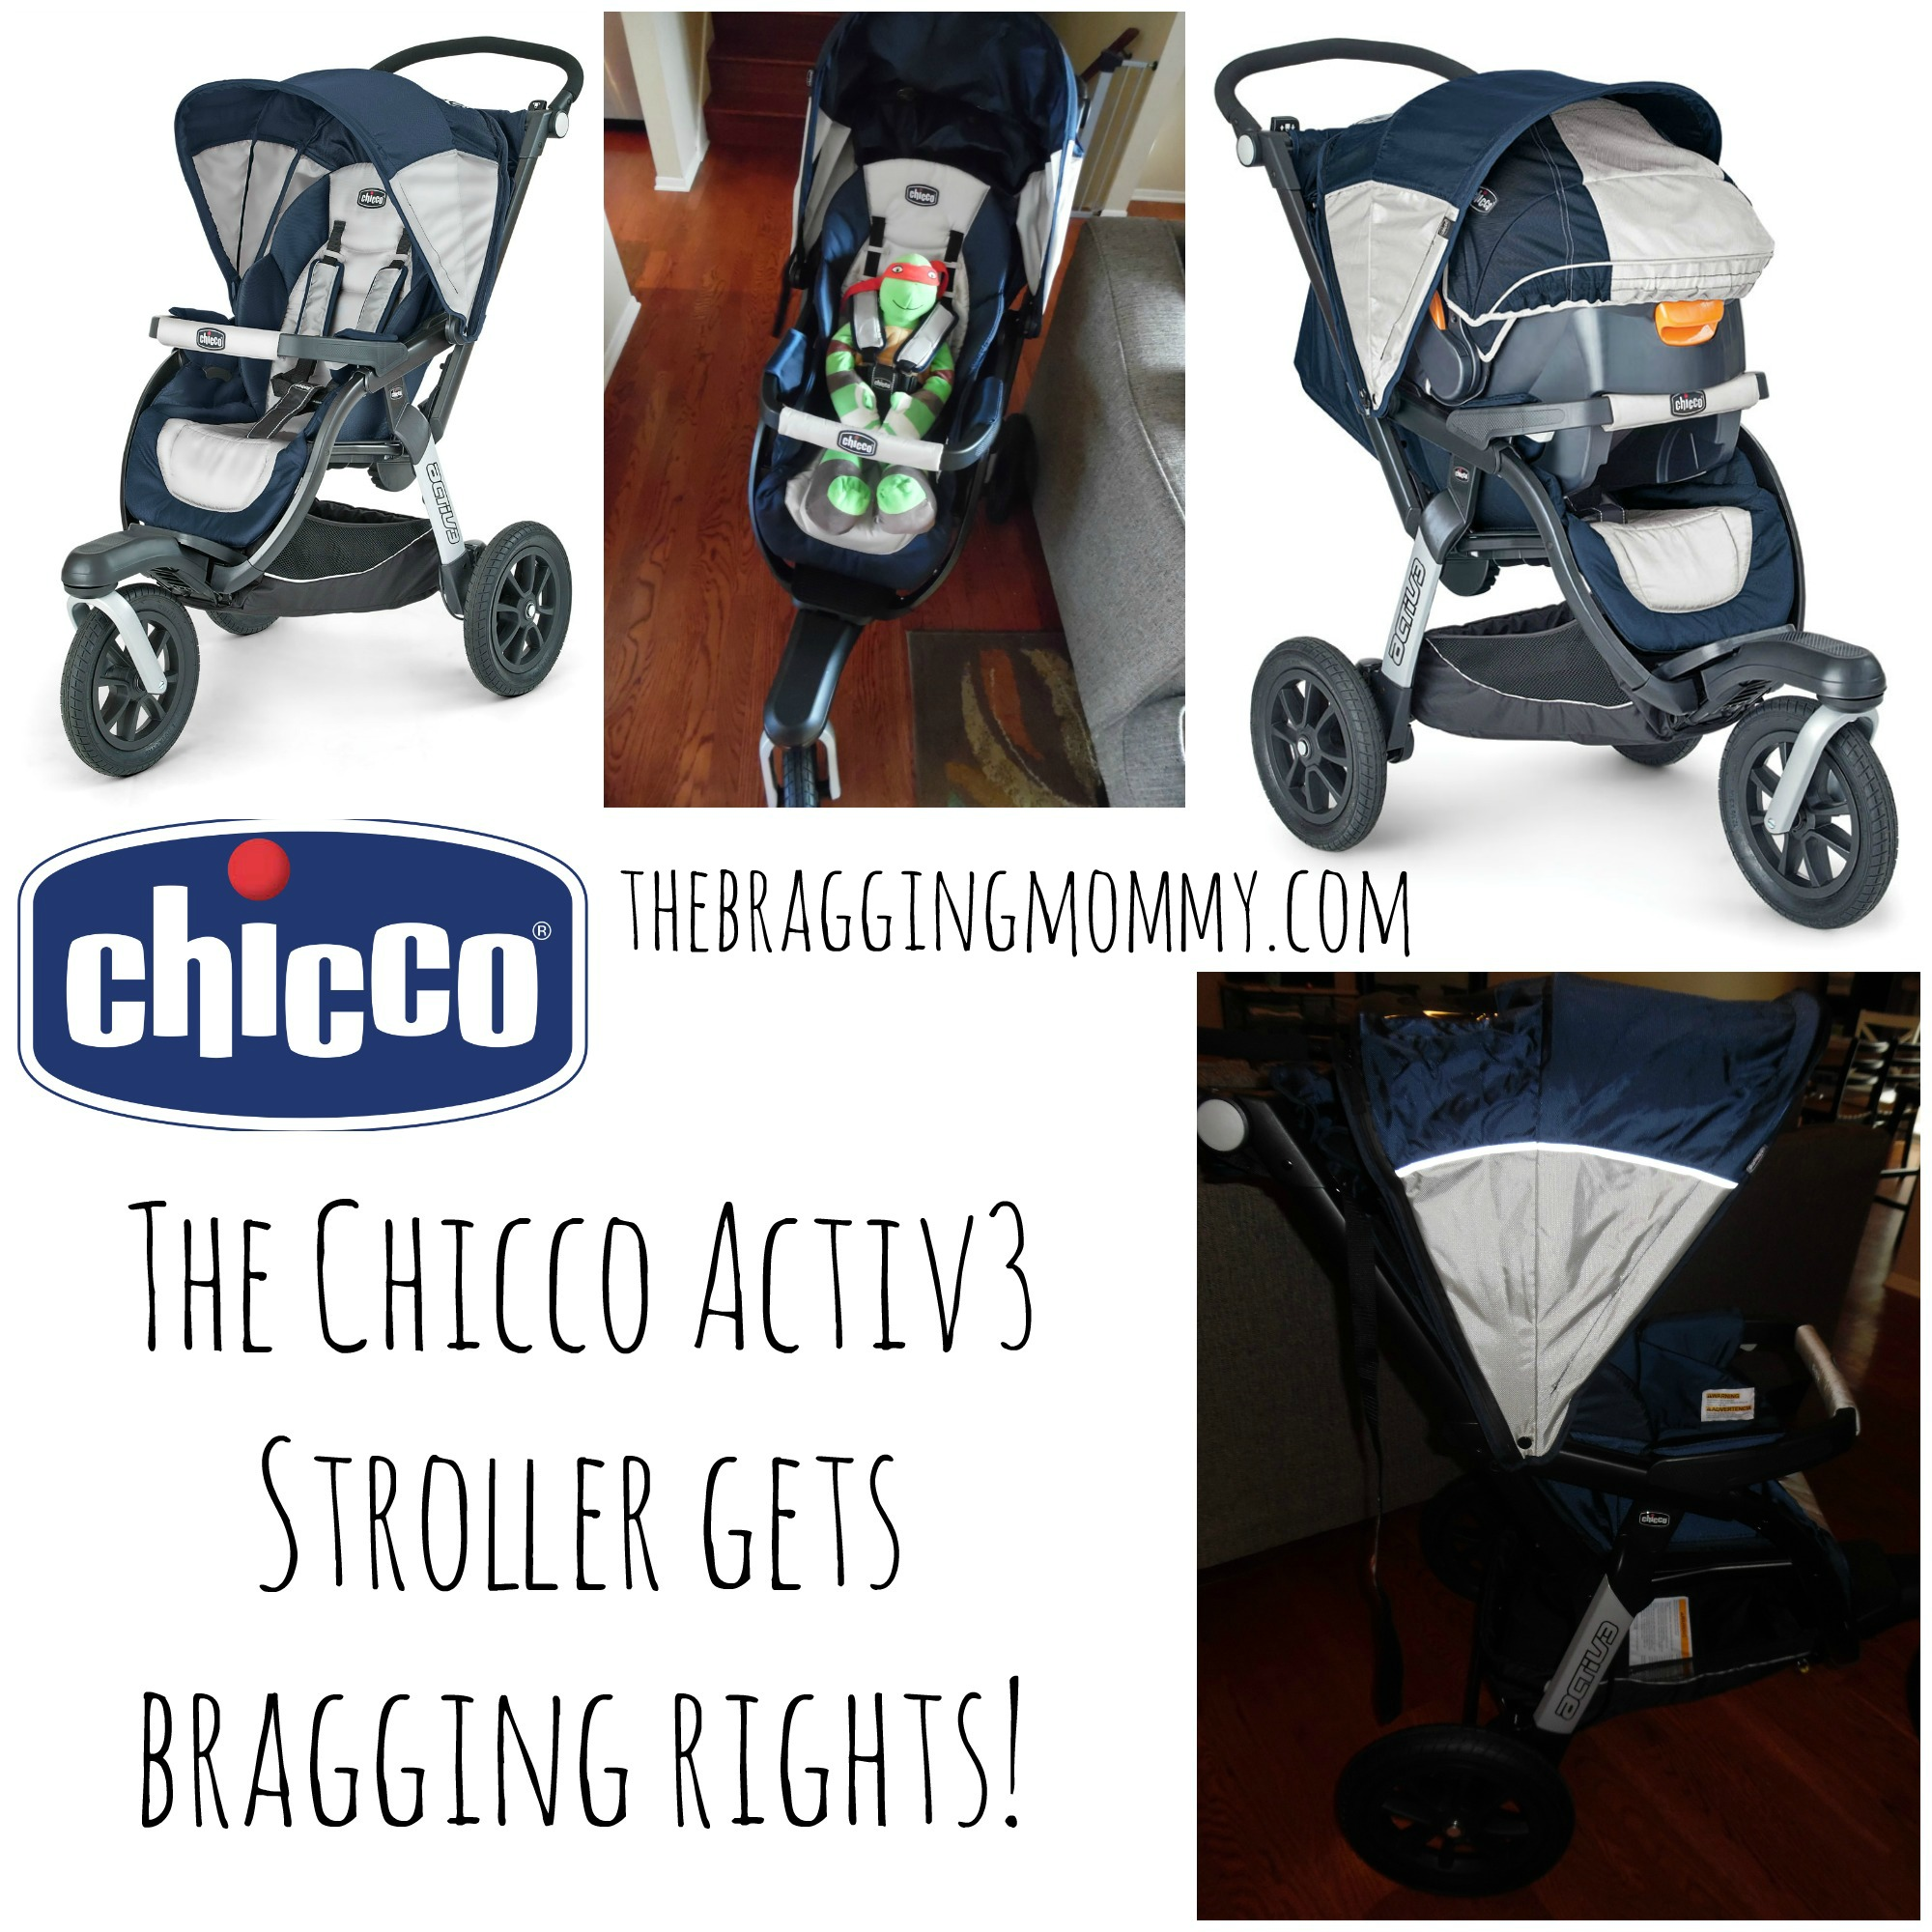 Chicco USA KeyFit 30 Carseat, Activ3 Stroller, and Lullaby Playard Review